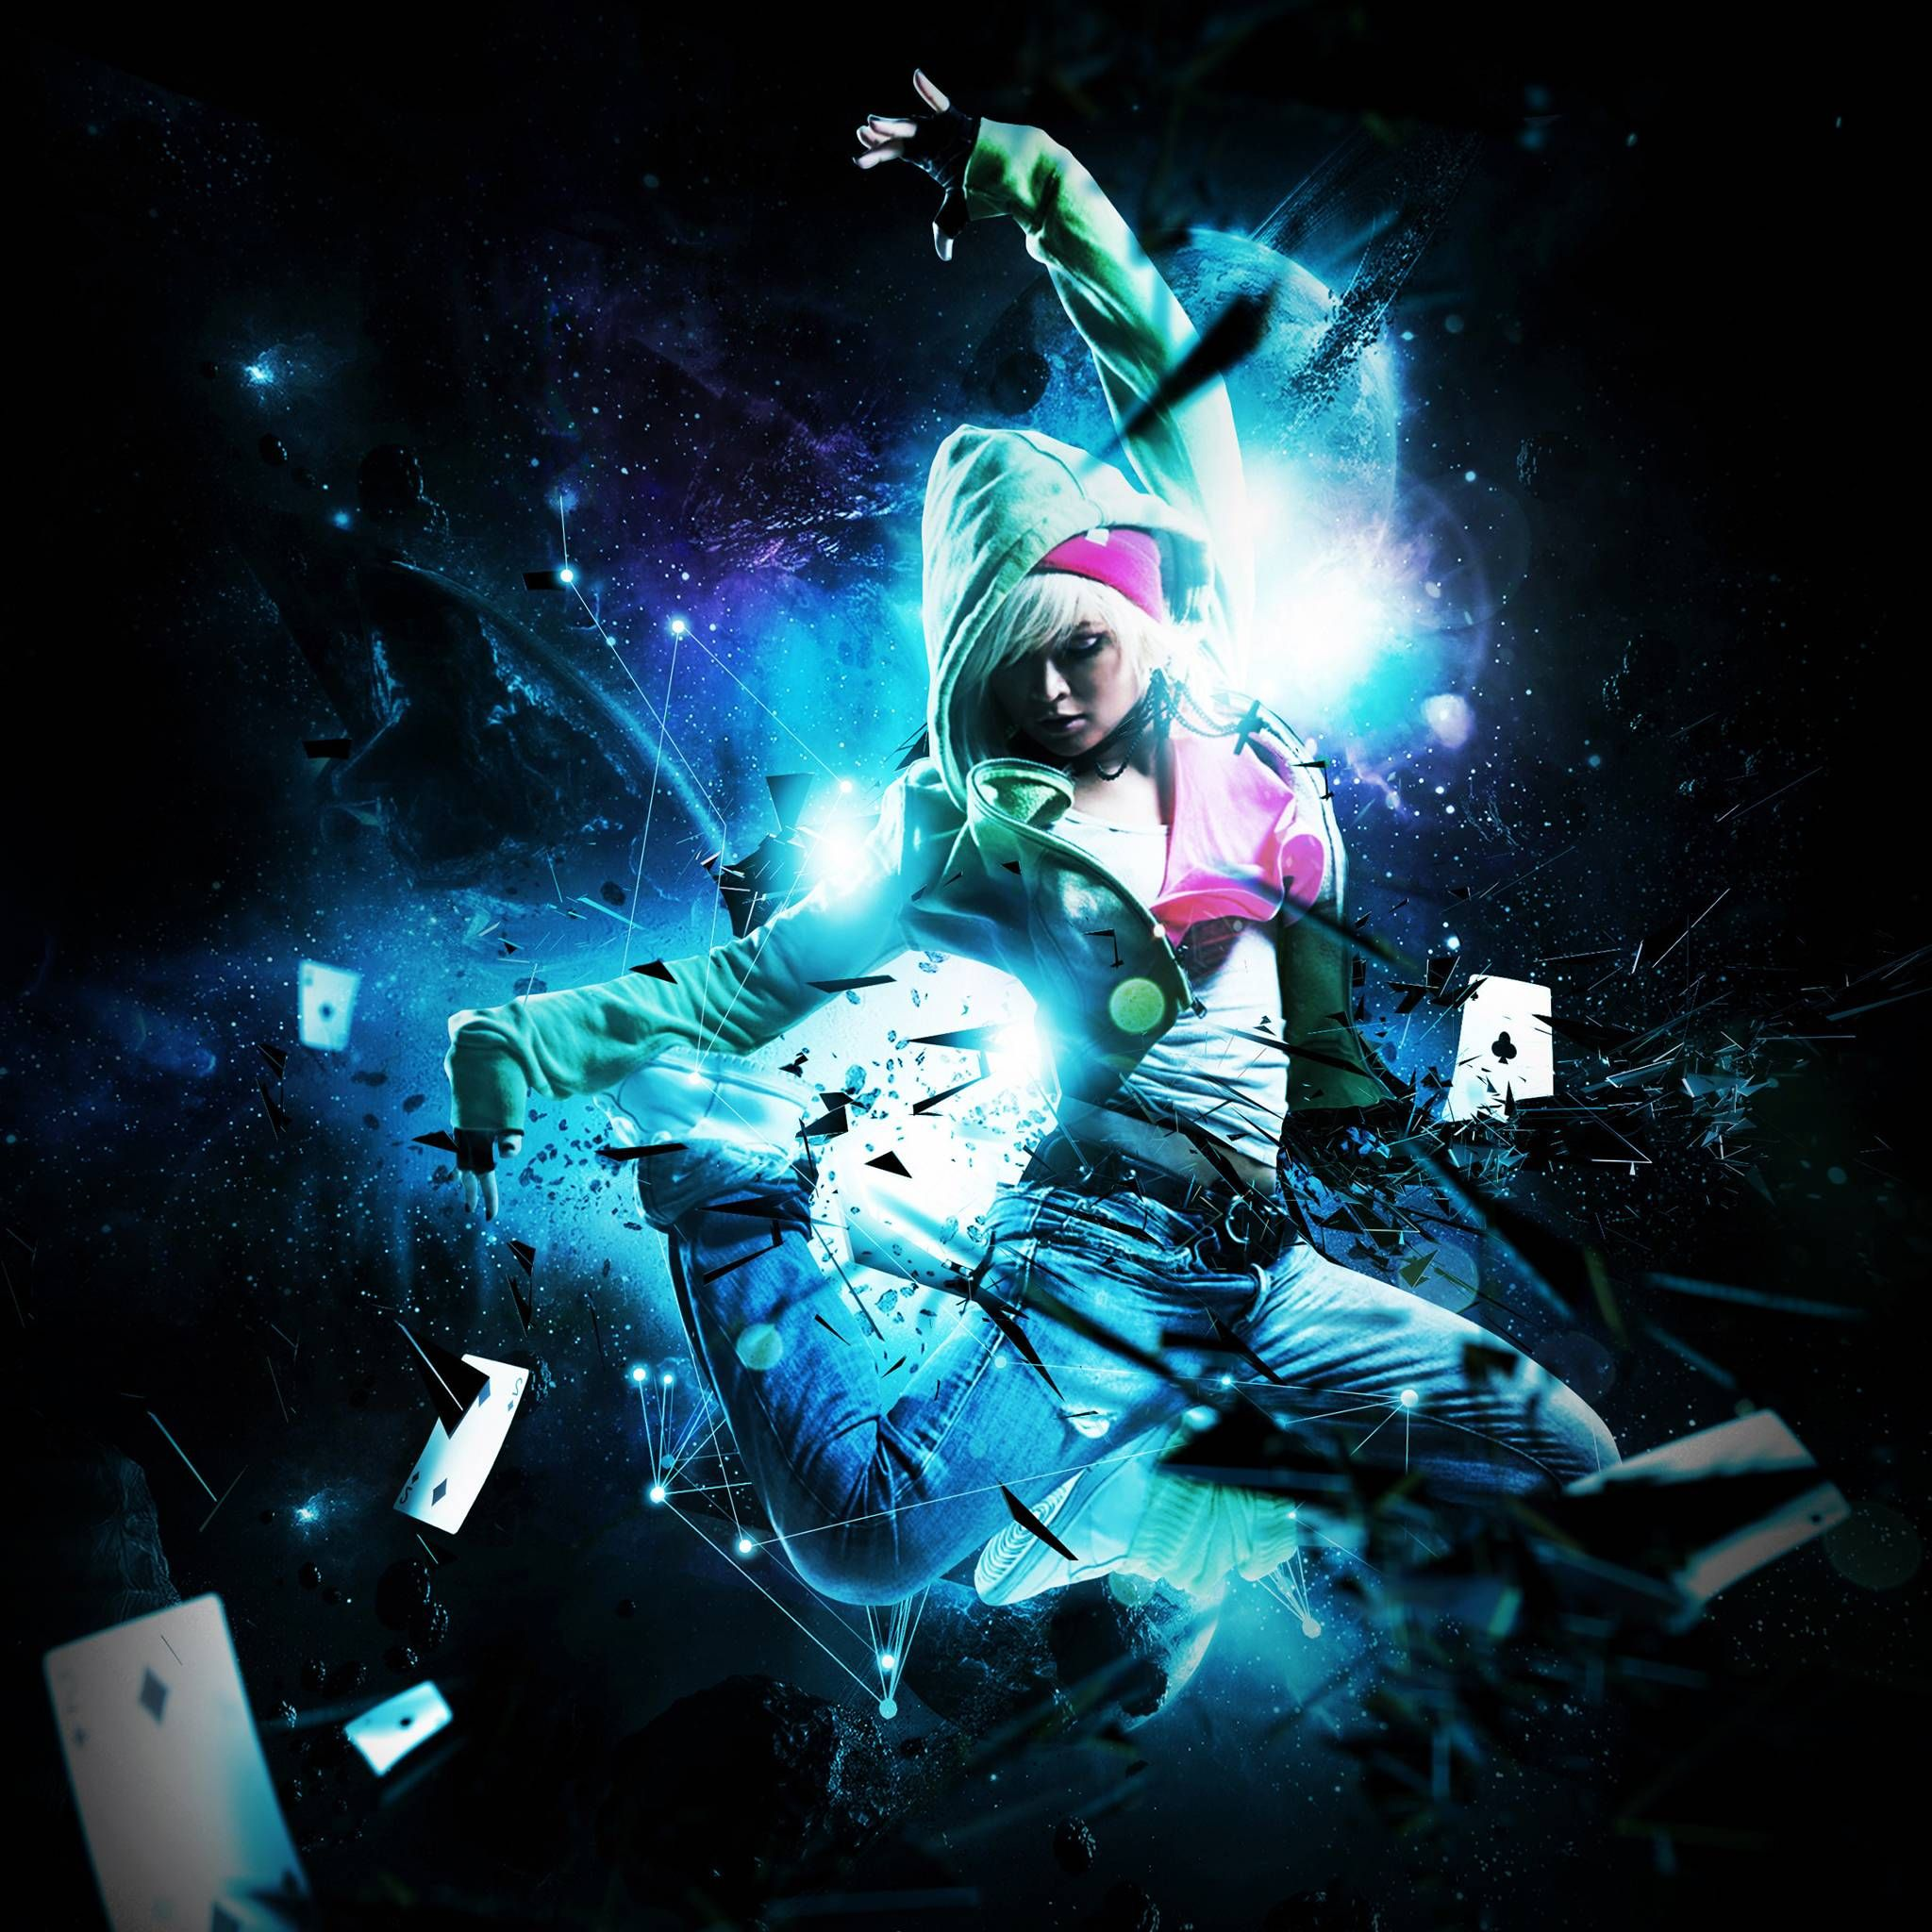 Afbeeldingsresultaat Voor Hip Hop Dance Wallpaper Boys Dance Wallpaper Iphone Wallpaper Vaporwave Dance Images